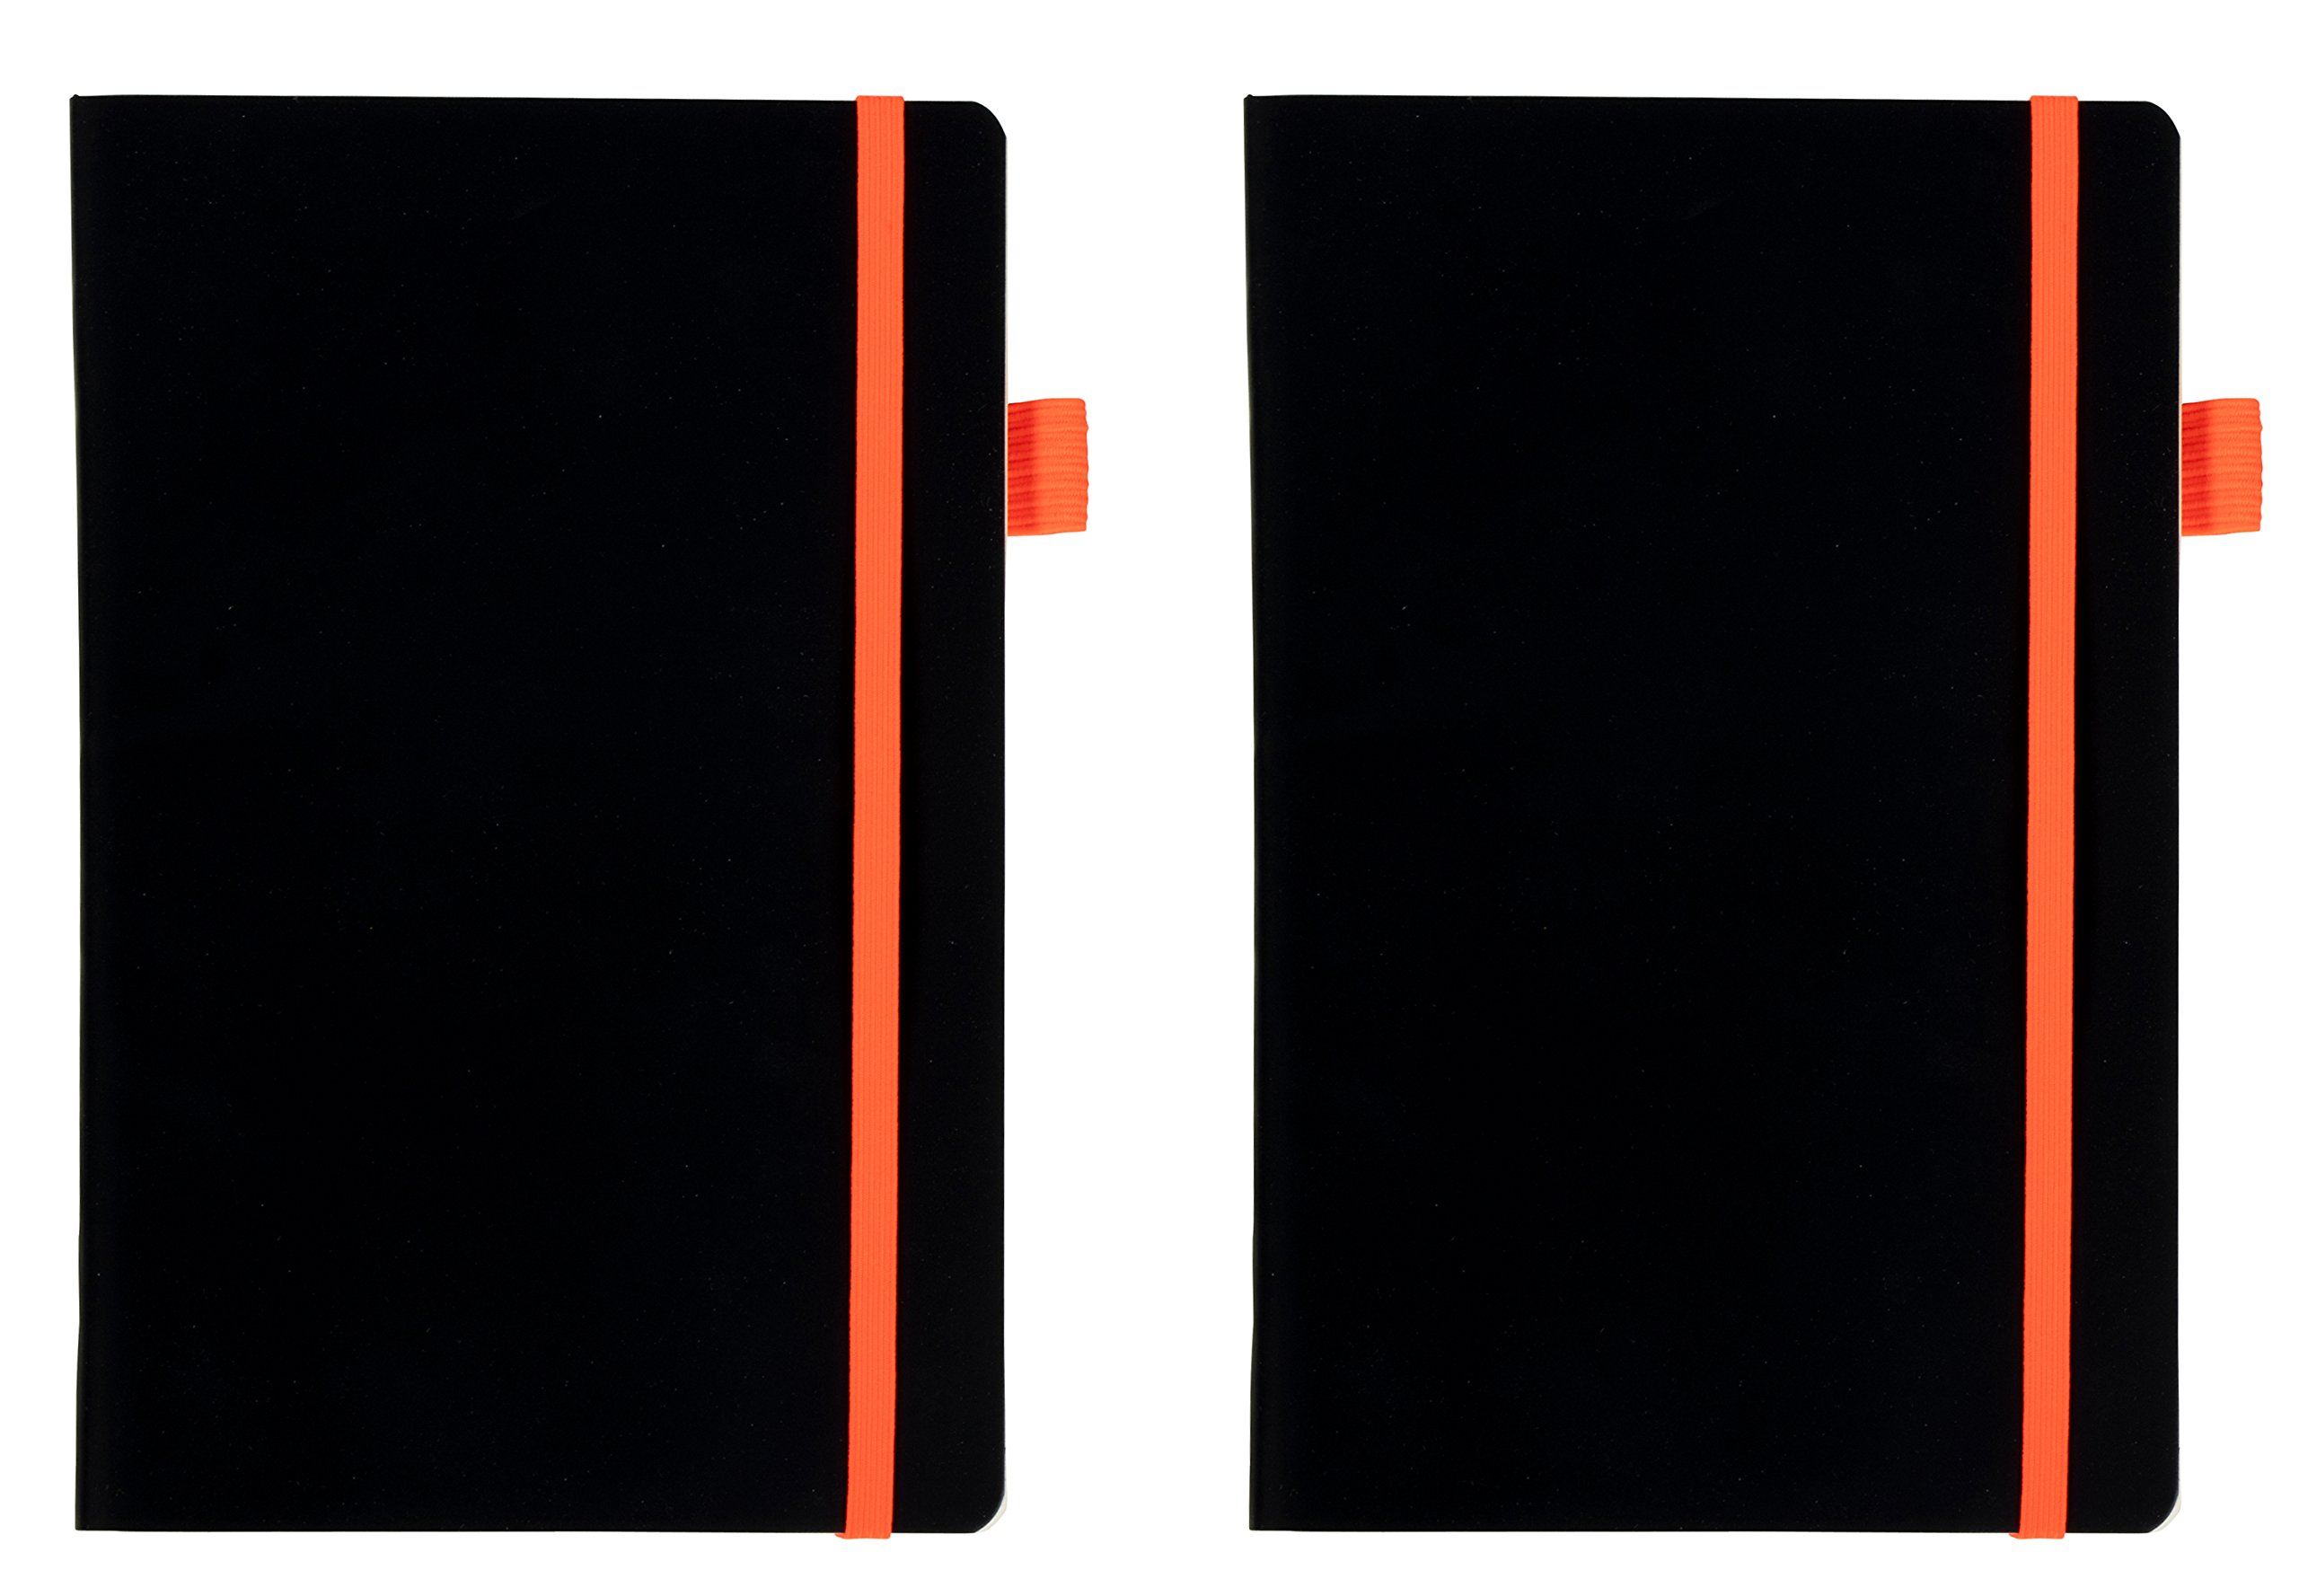 Leather Notebooks- 2-Pack Professional Black Lined Notebooks with Elastic Strap, Travel Journals, Diary, Notepad for Office, School, Students, Black Leather Soft Cover, 80 Sheets, 5.25 x 8.25 Inches